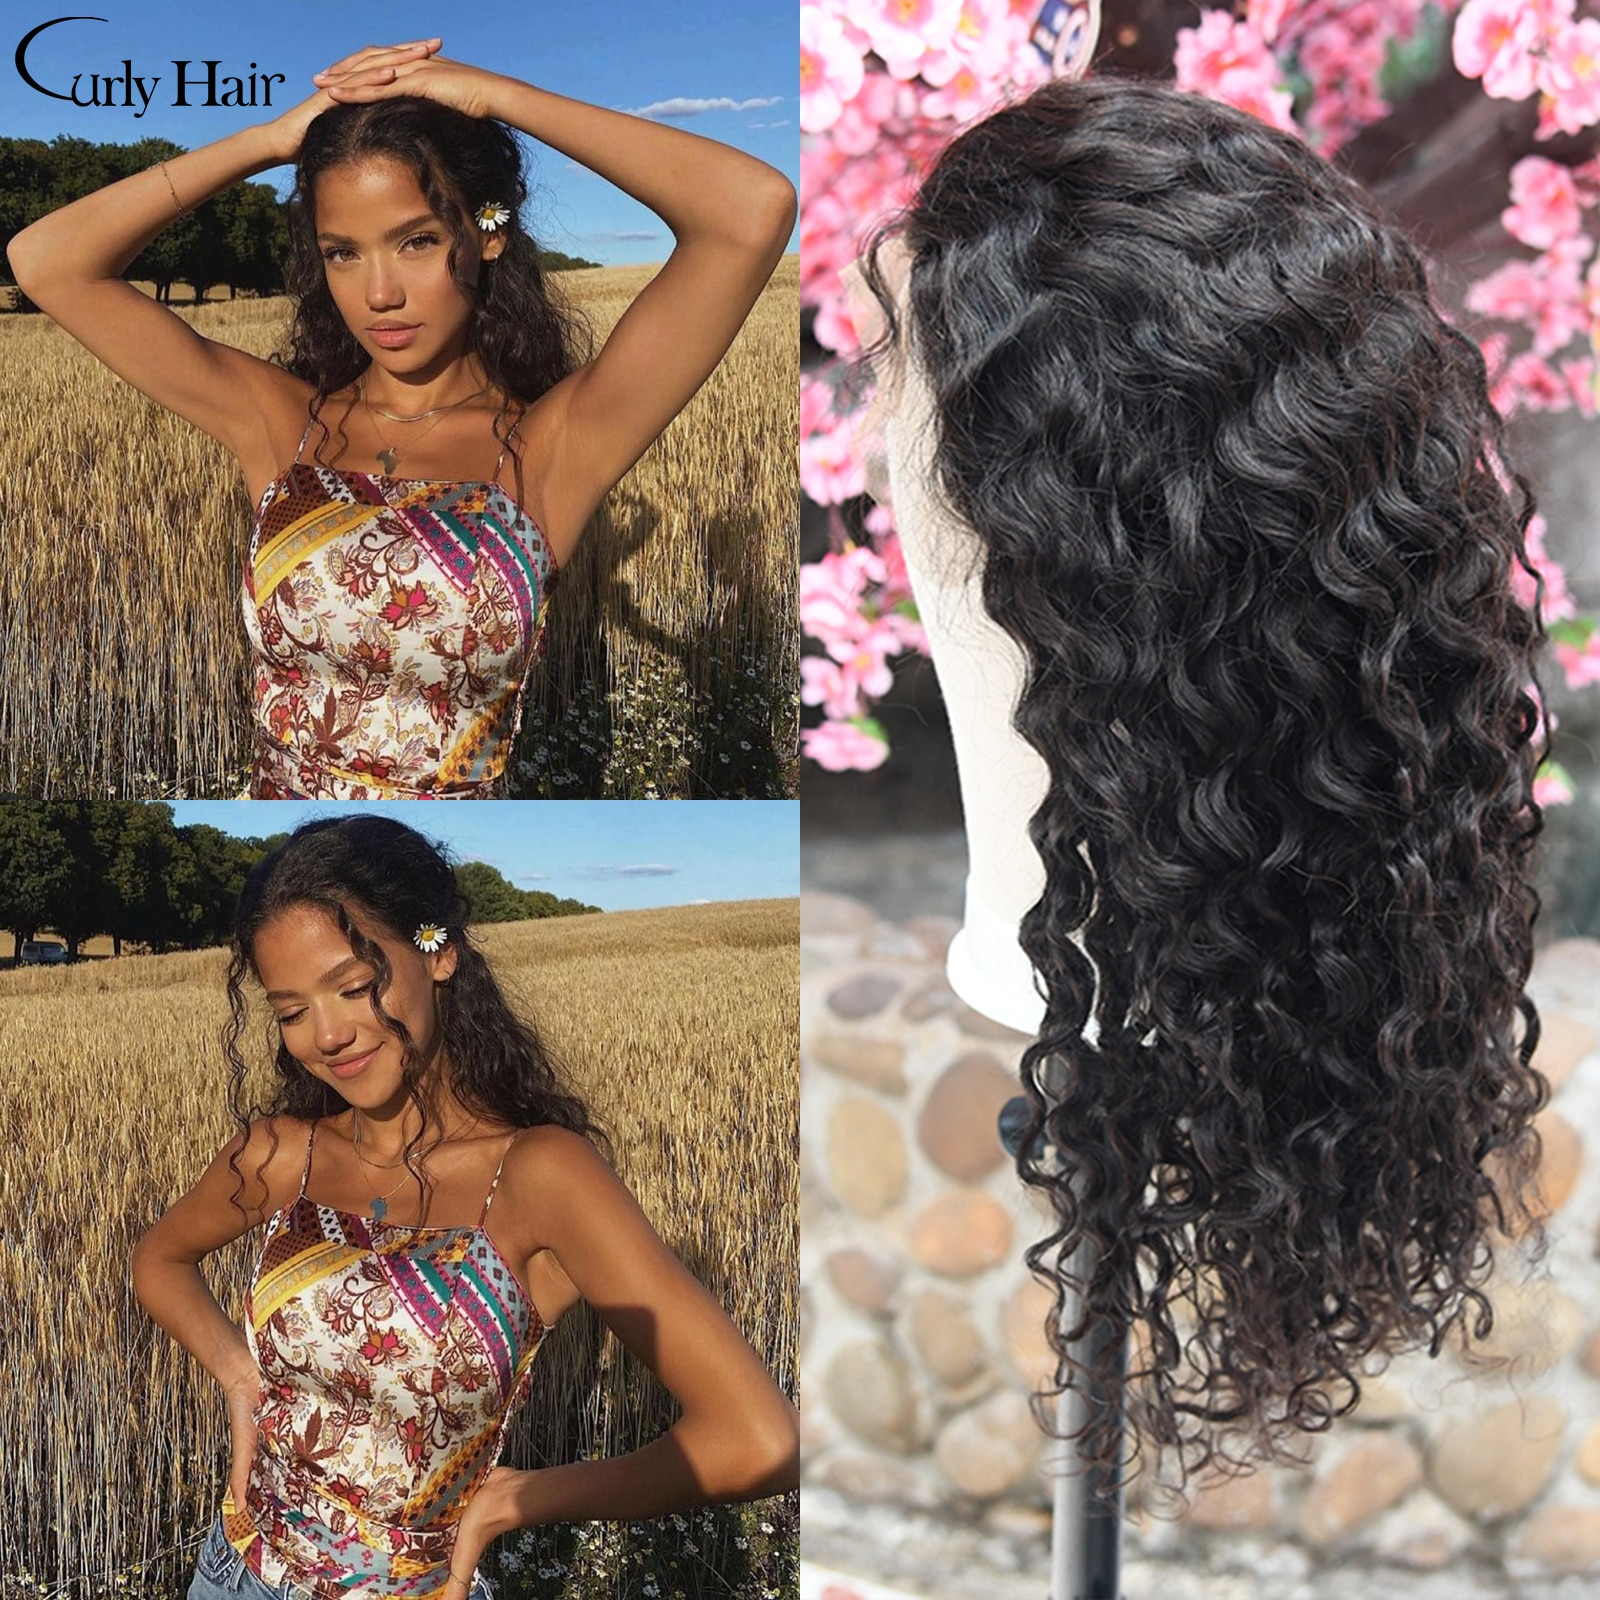 Curly Wave Lace Front Human Hair Wigs 13x4 Brazilian Human Hair 26 28 Inch 180% Density Natural Lace Frontal Wig For Black Women